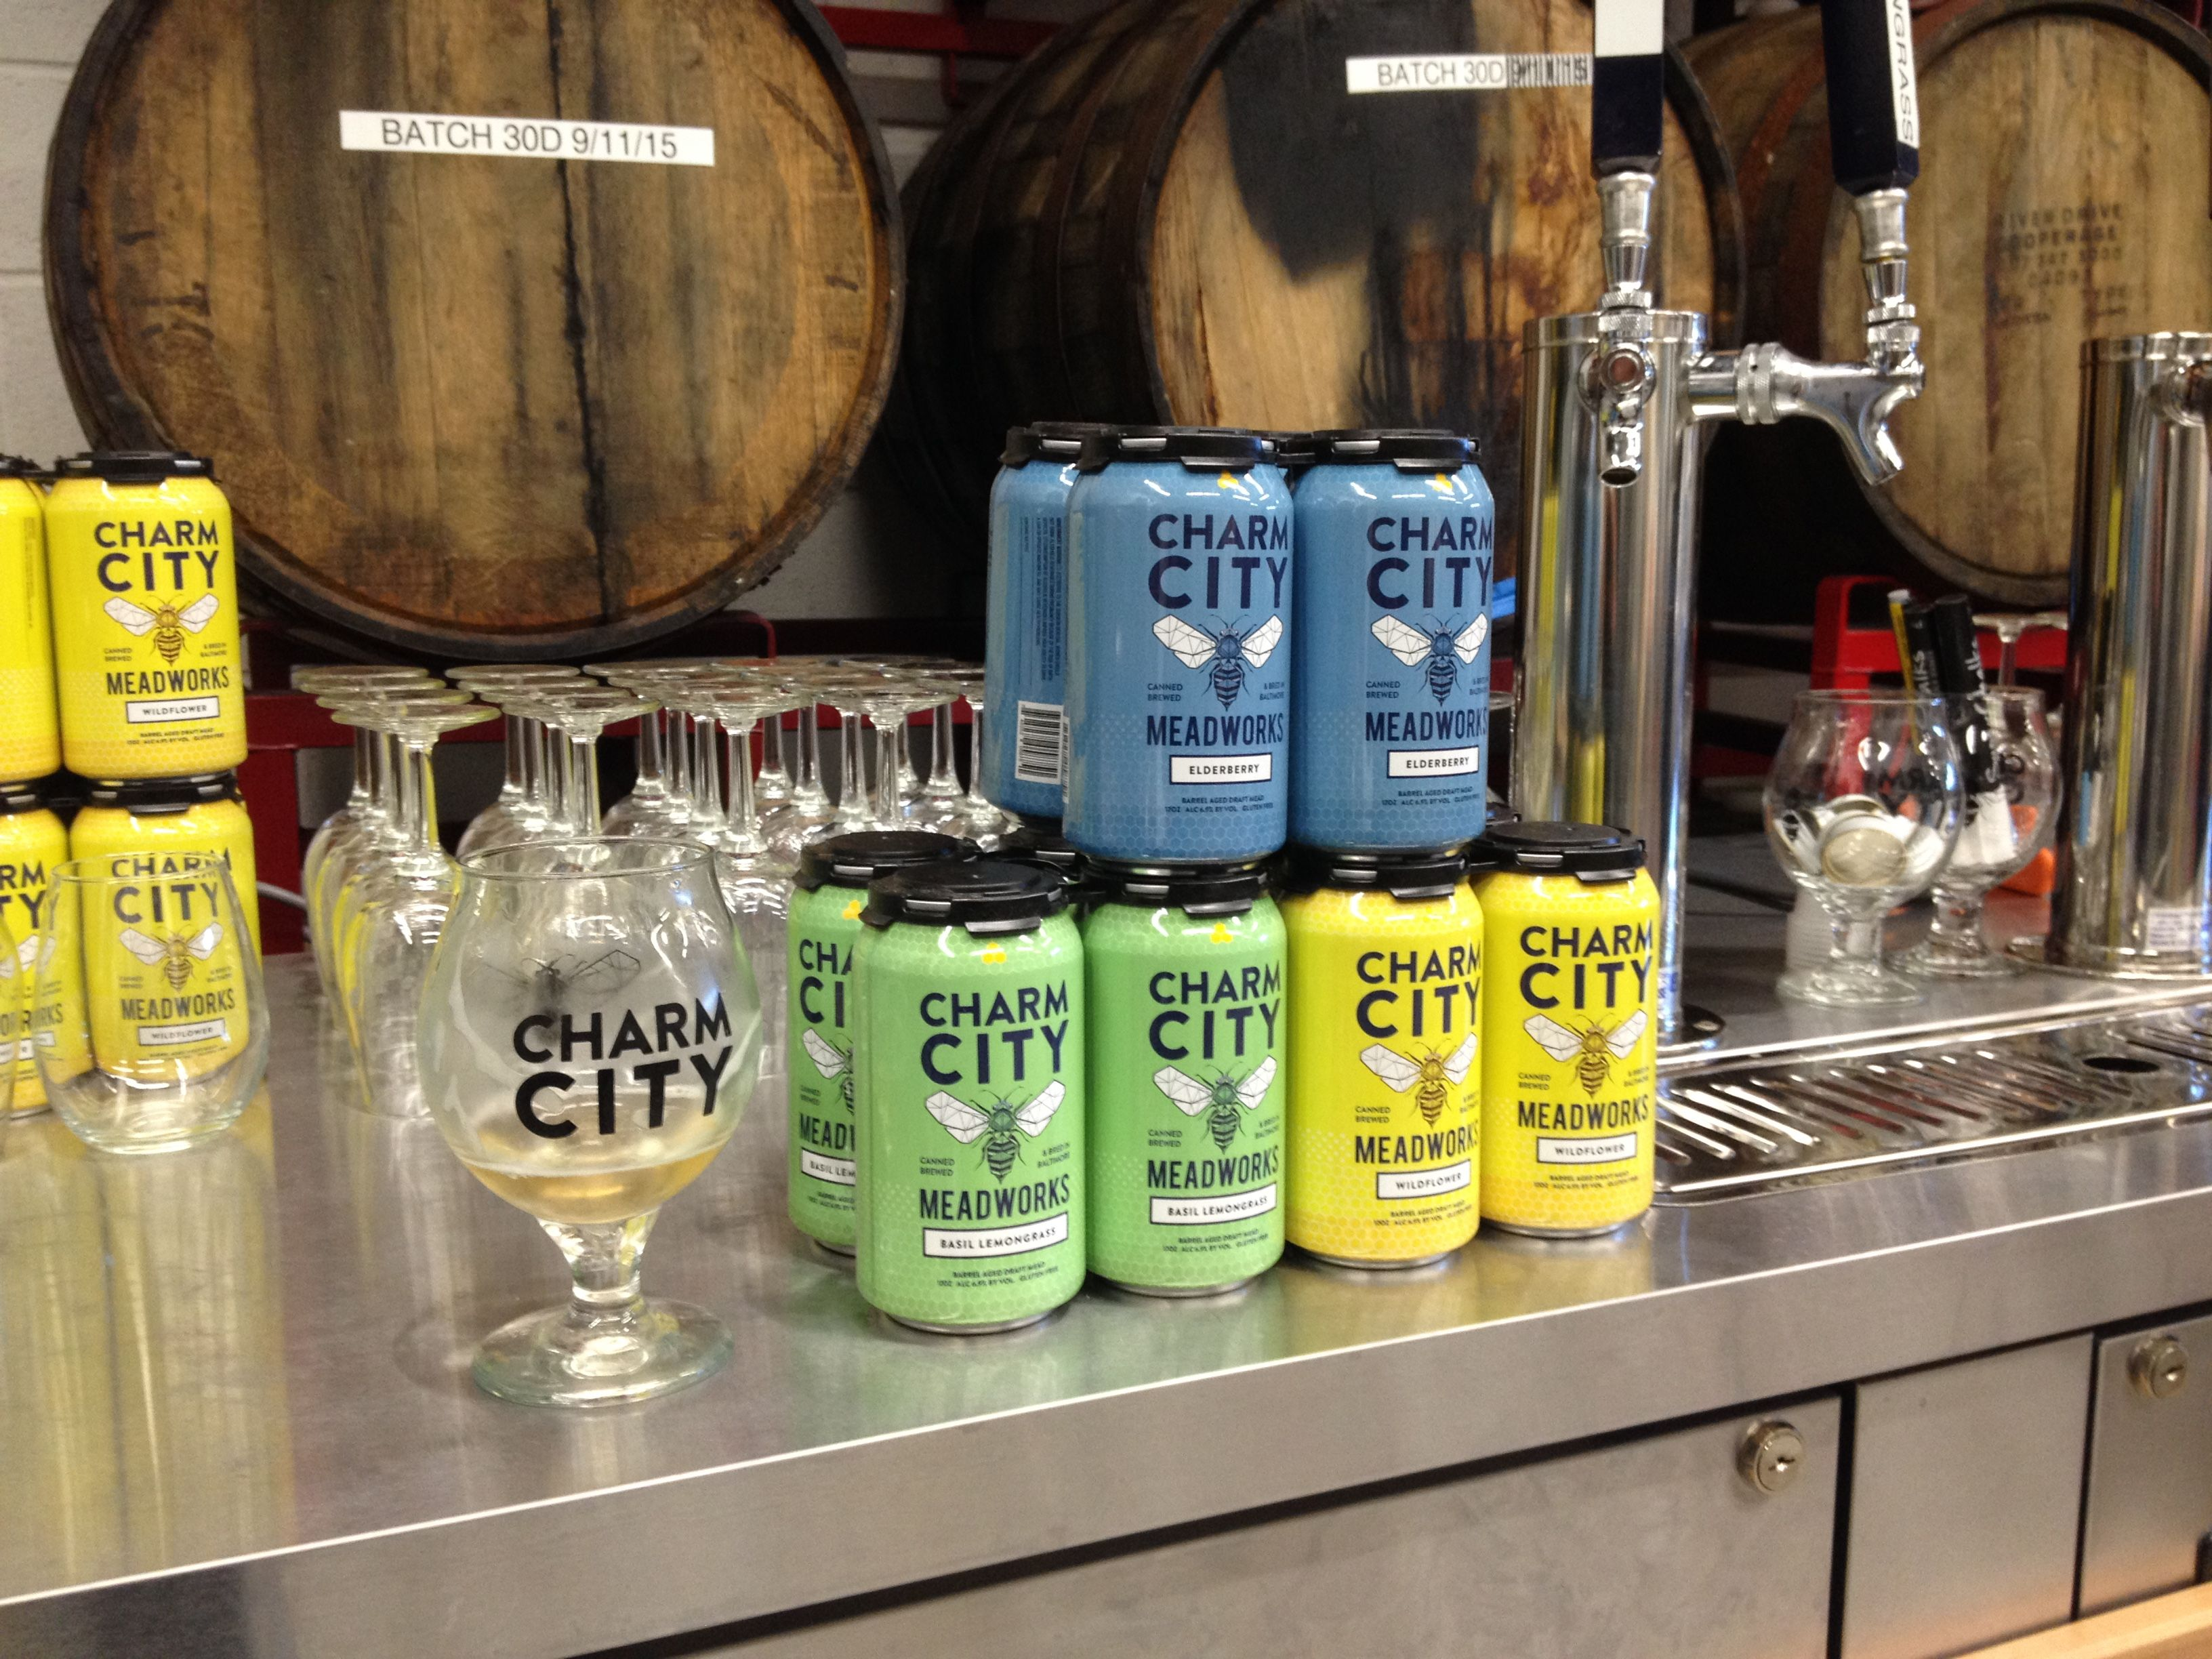 The good nature and passion of the crew at Charm City Meadworks, have been working their tails off to make mead as ubiquitous in Baltimore as any beer or wine. #alcohol #bees #charmcitymead